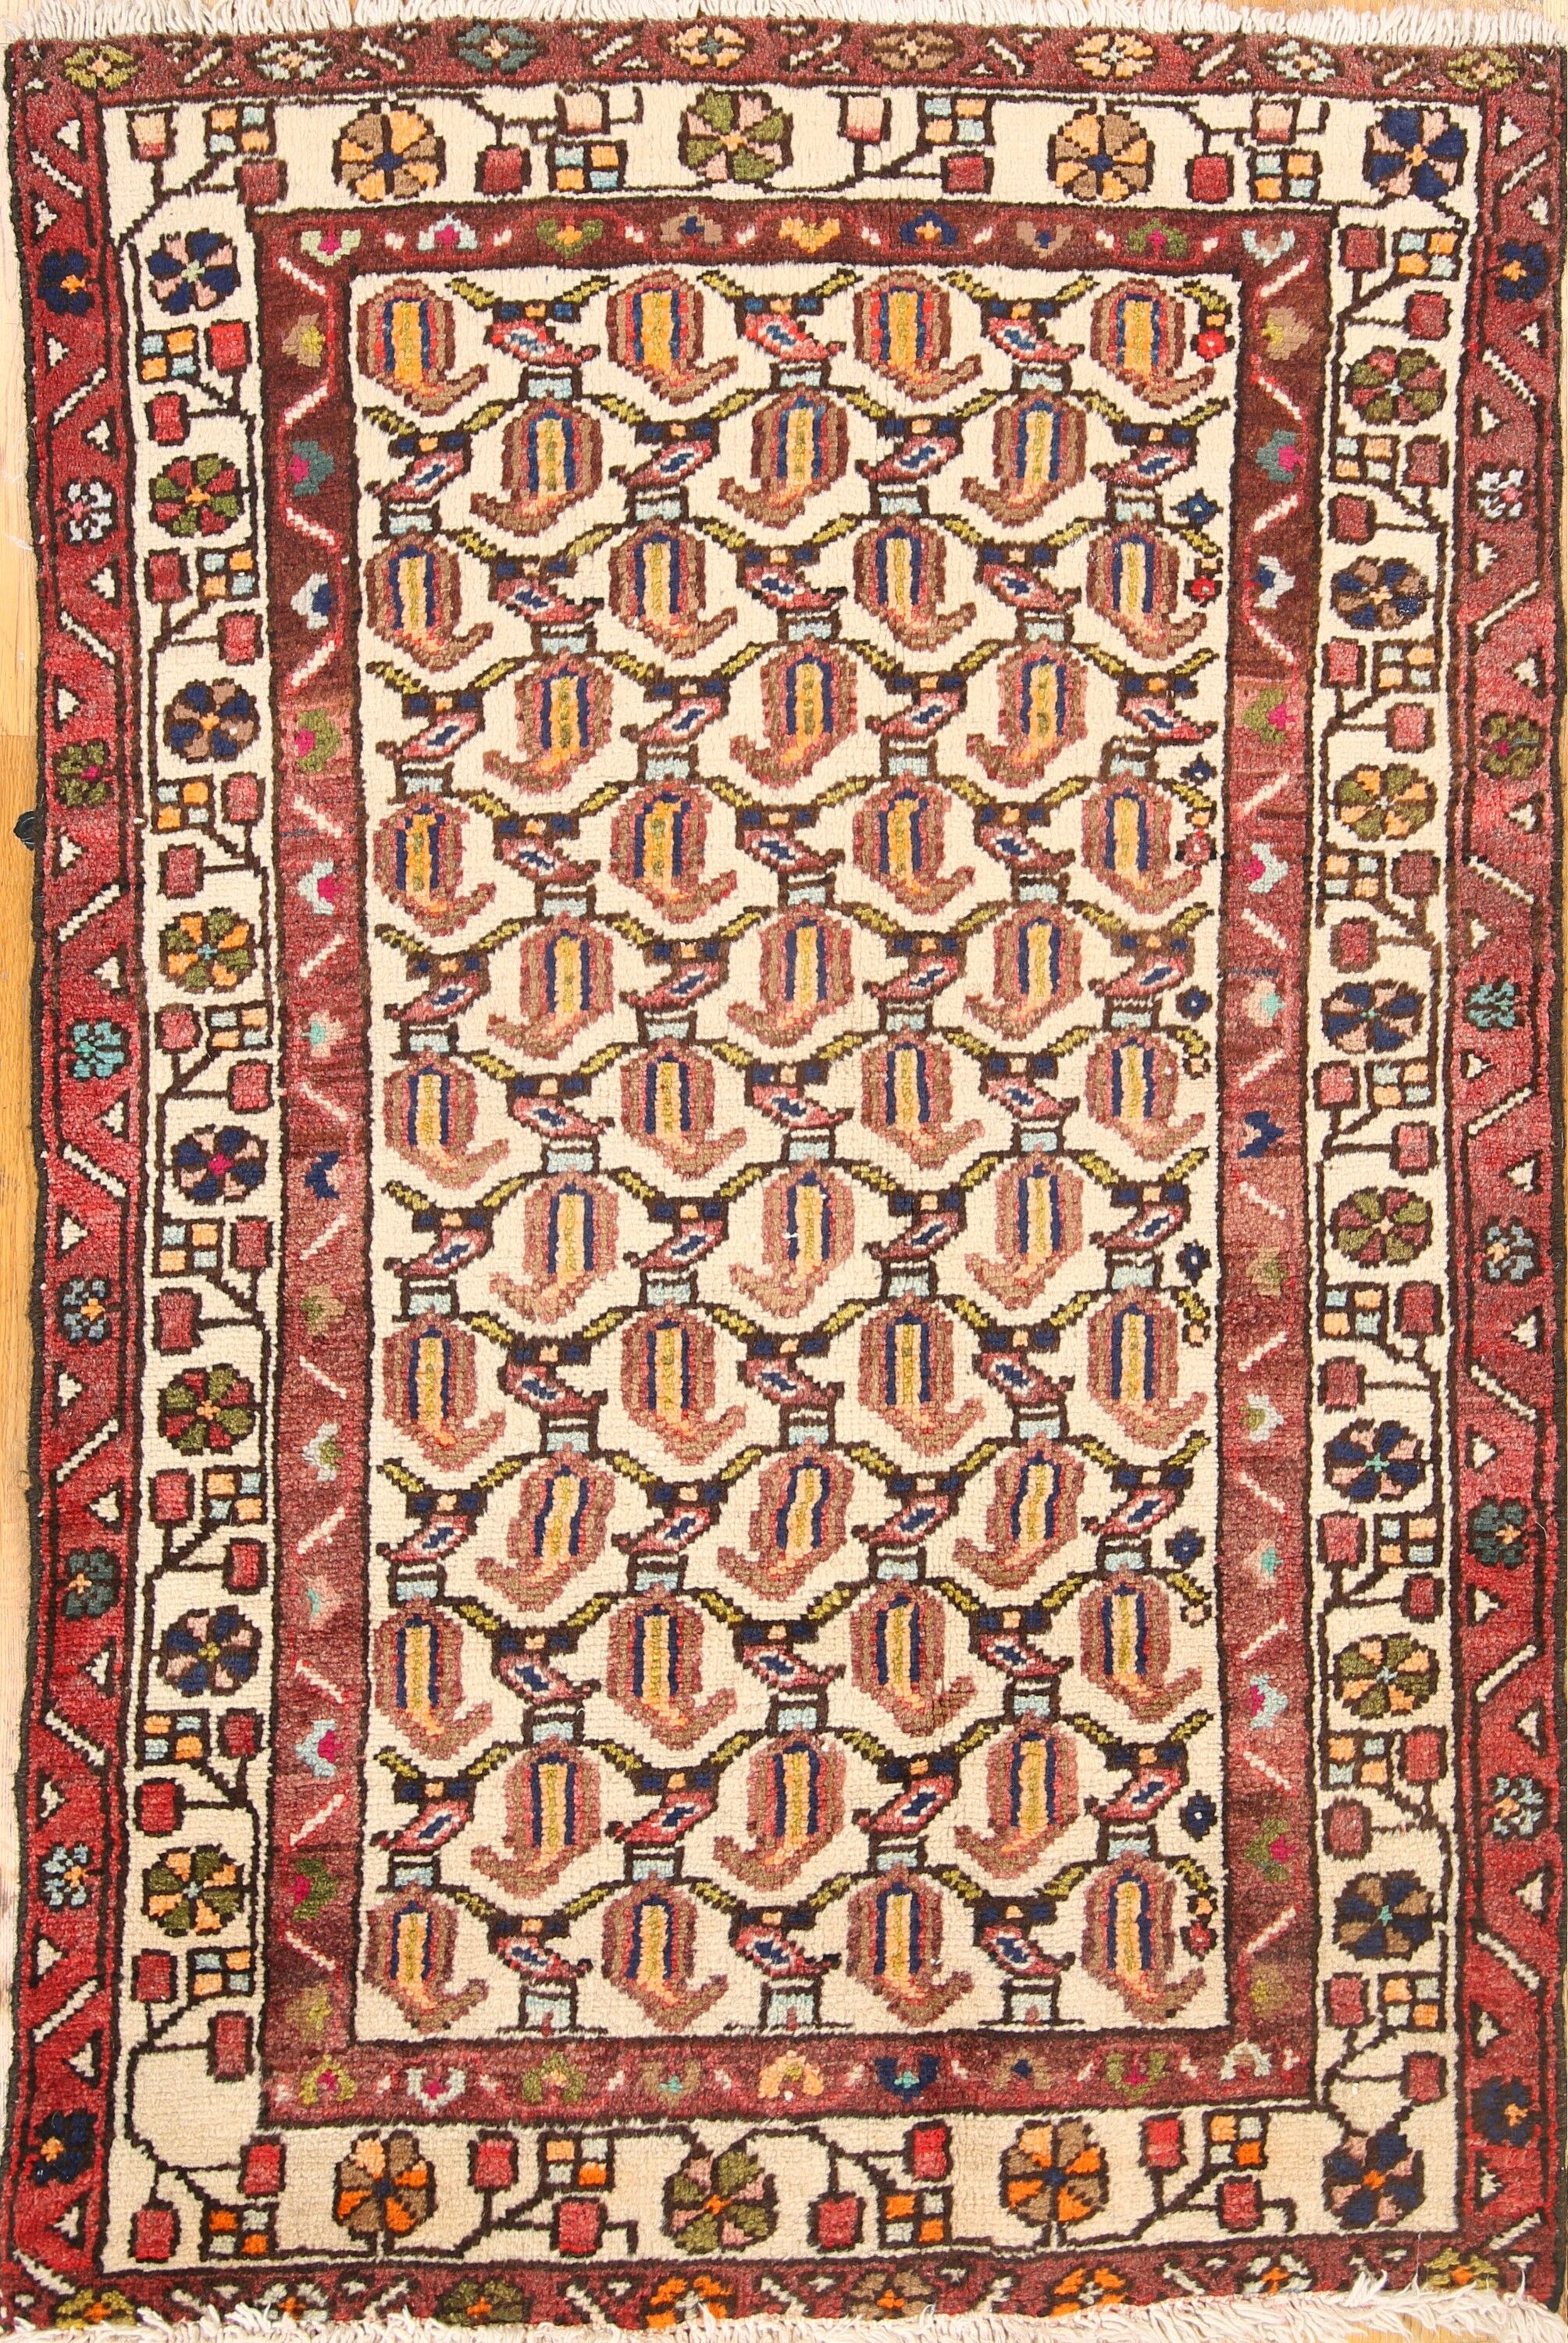 One-of-a-Kind Malayer Hamedan Vintage Persian Traditional Hand-Knotted 2'5